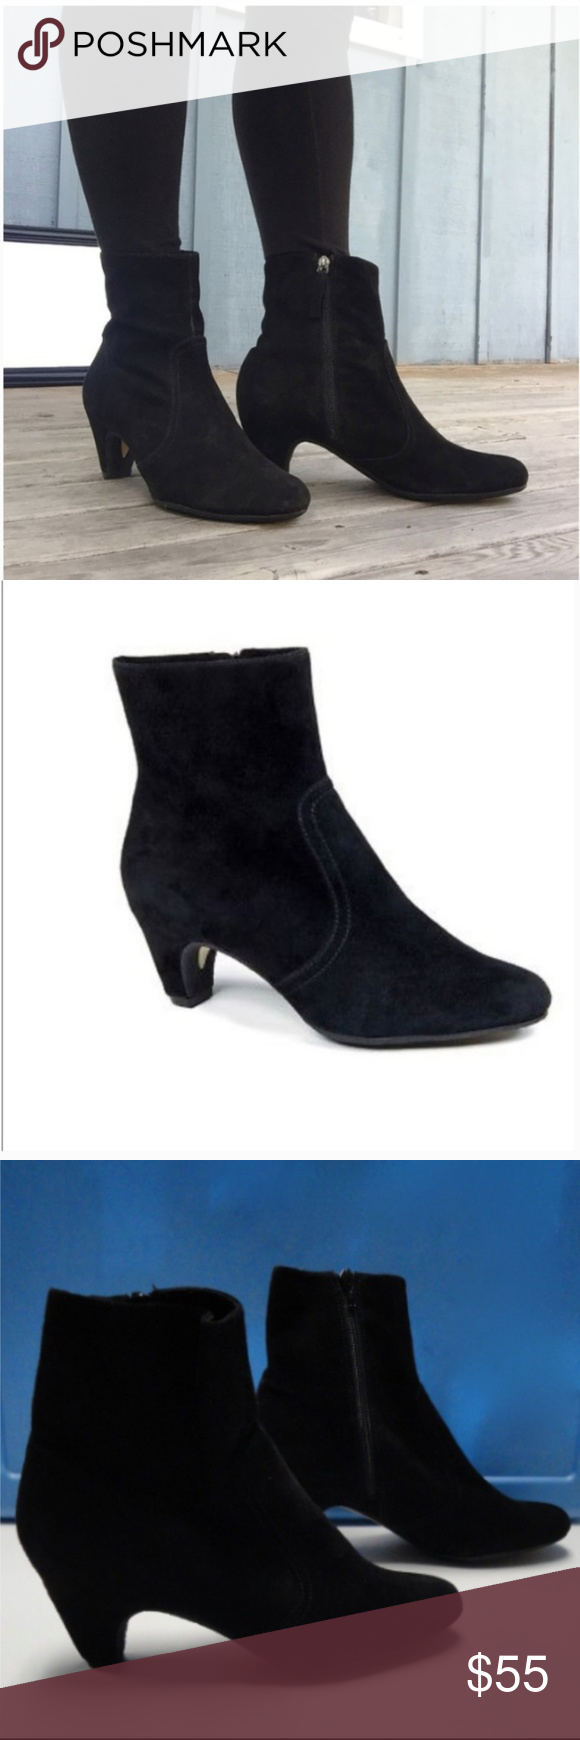 427b7cac6fc2 Sam Edelman Maddie Black Suede Ankle Boots Slip into a pair of Sam Edleman Maddie  Booties